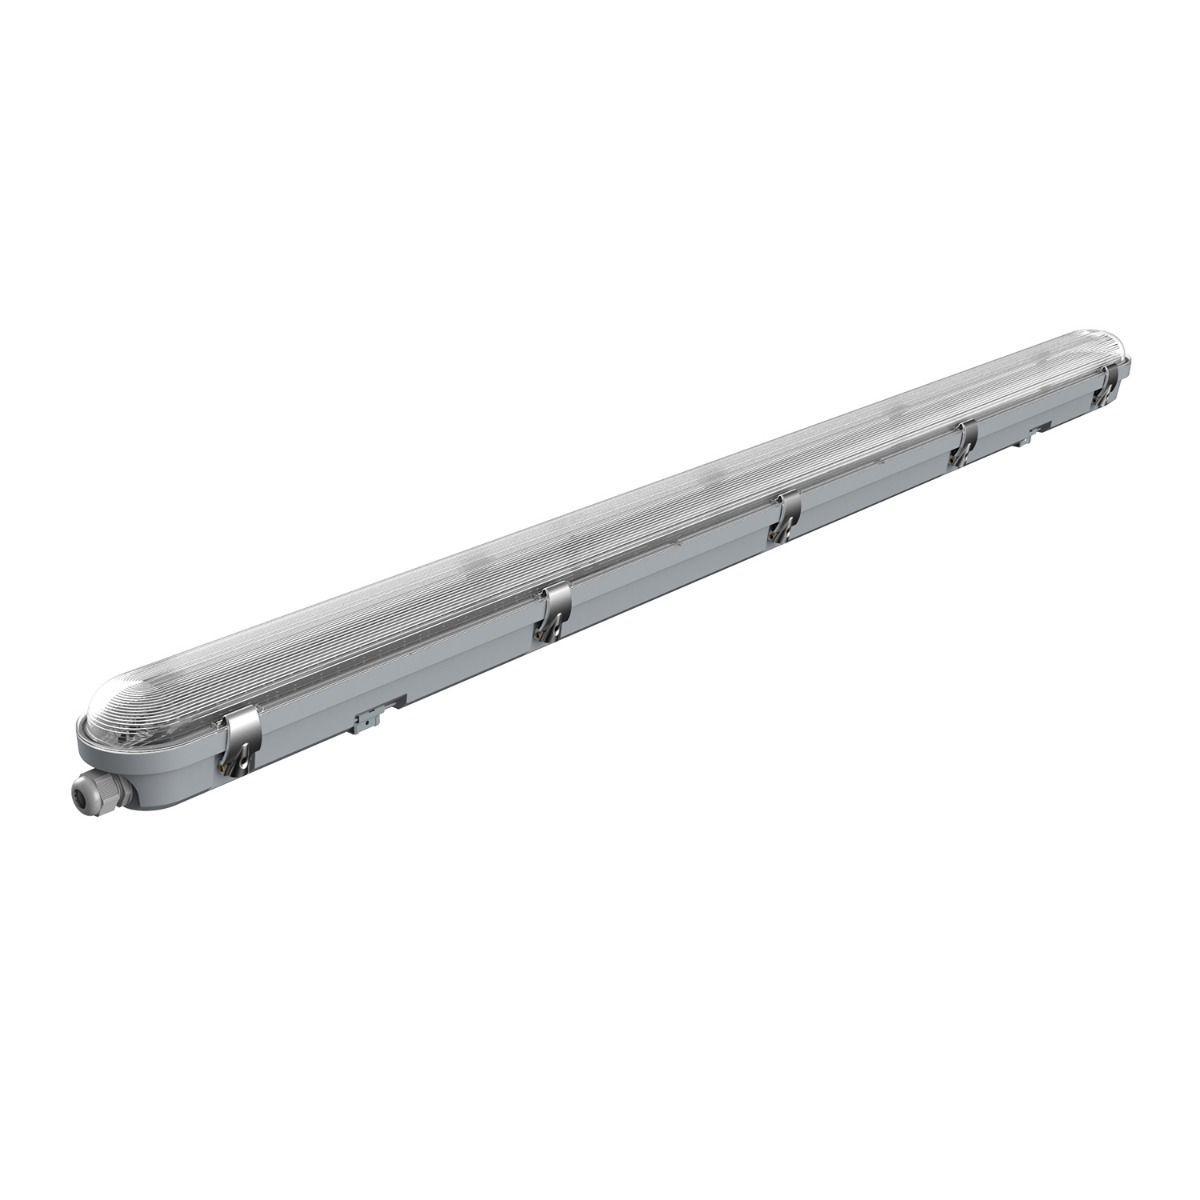 Noxion LED Waterproof Batten Poseidon V2.0 120cm 30W 4000K IP65 Through Wiring | Replacer for 2x36W